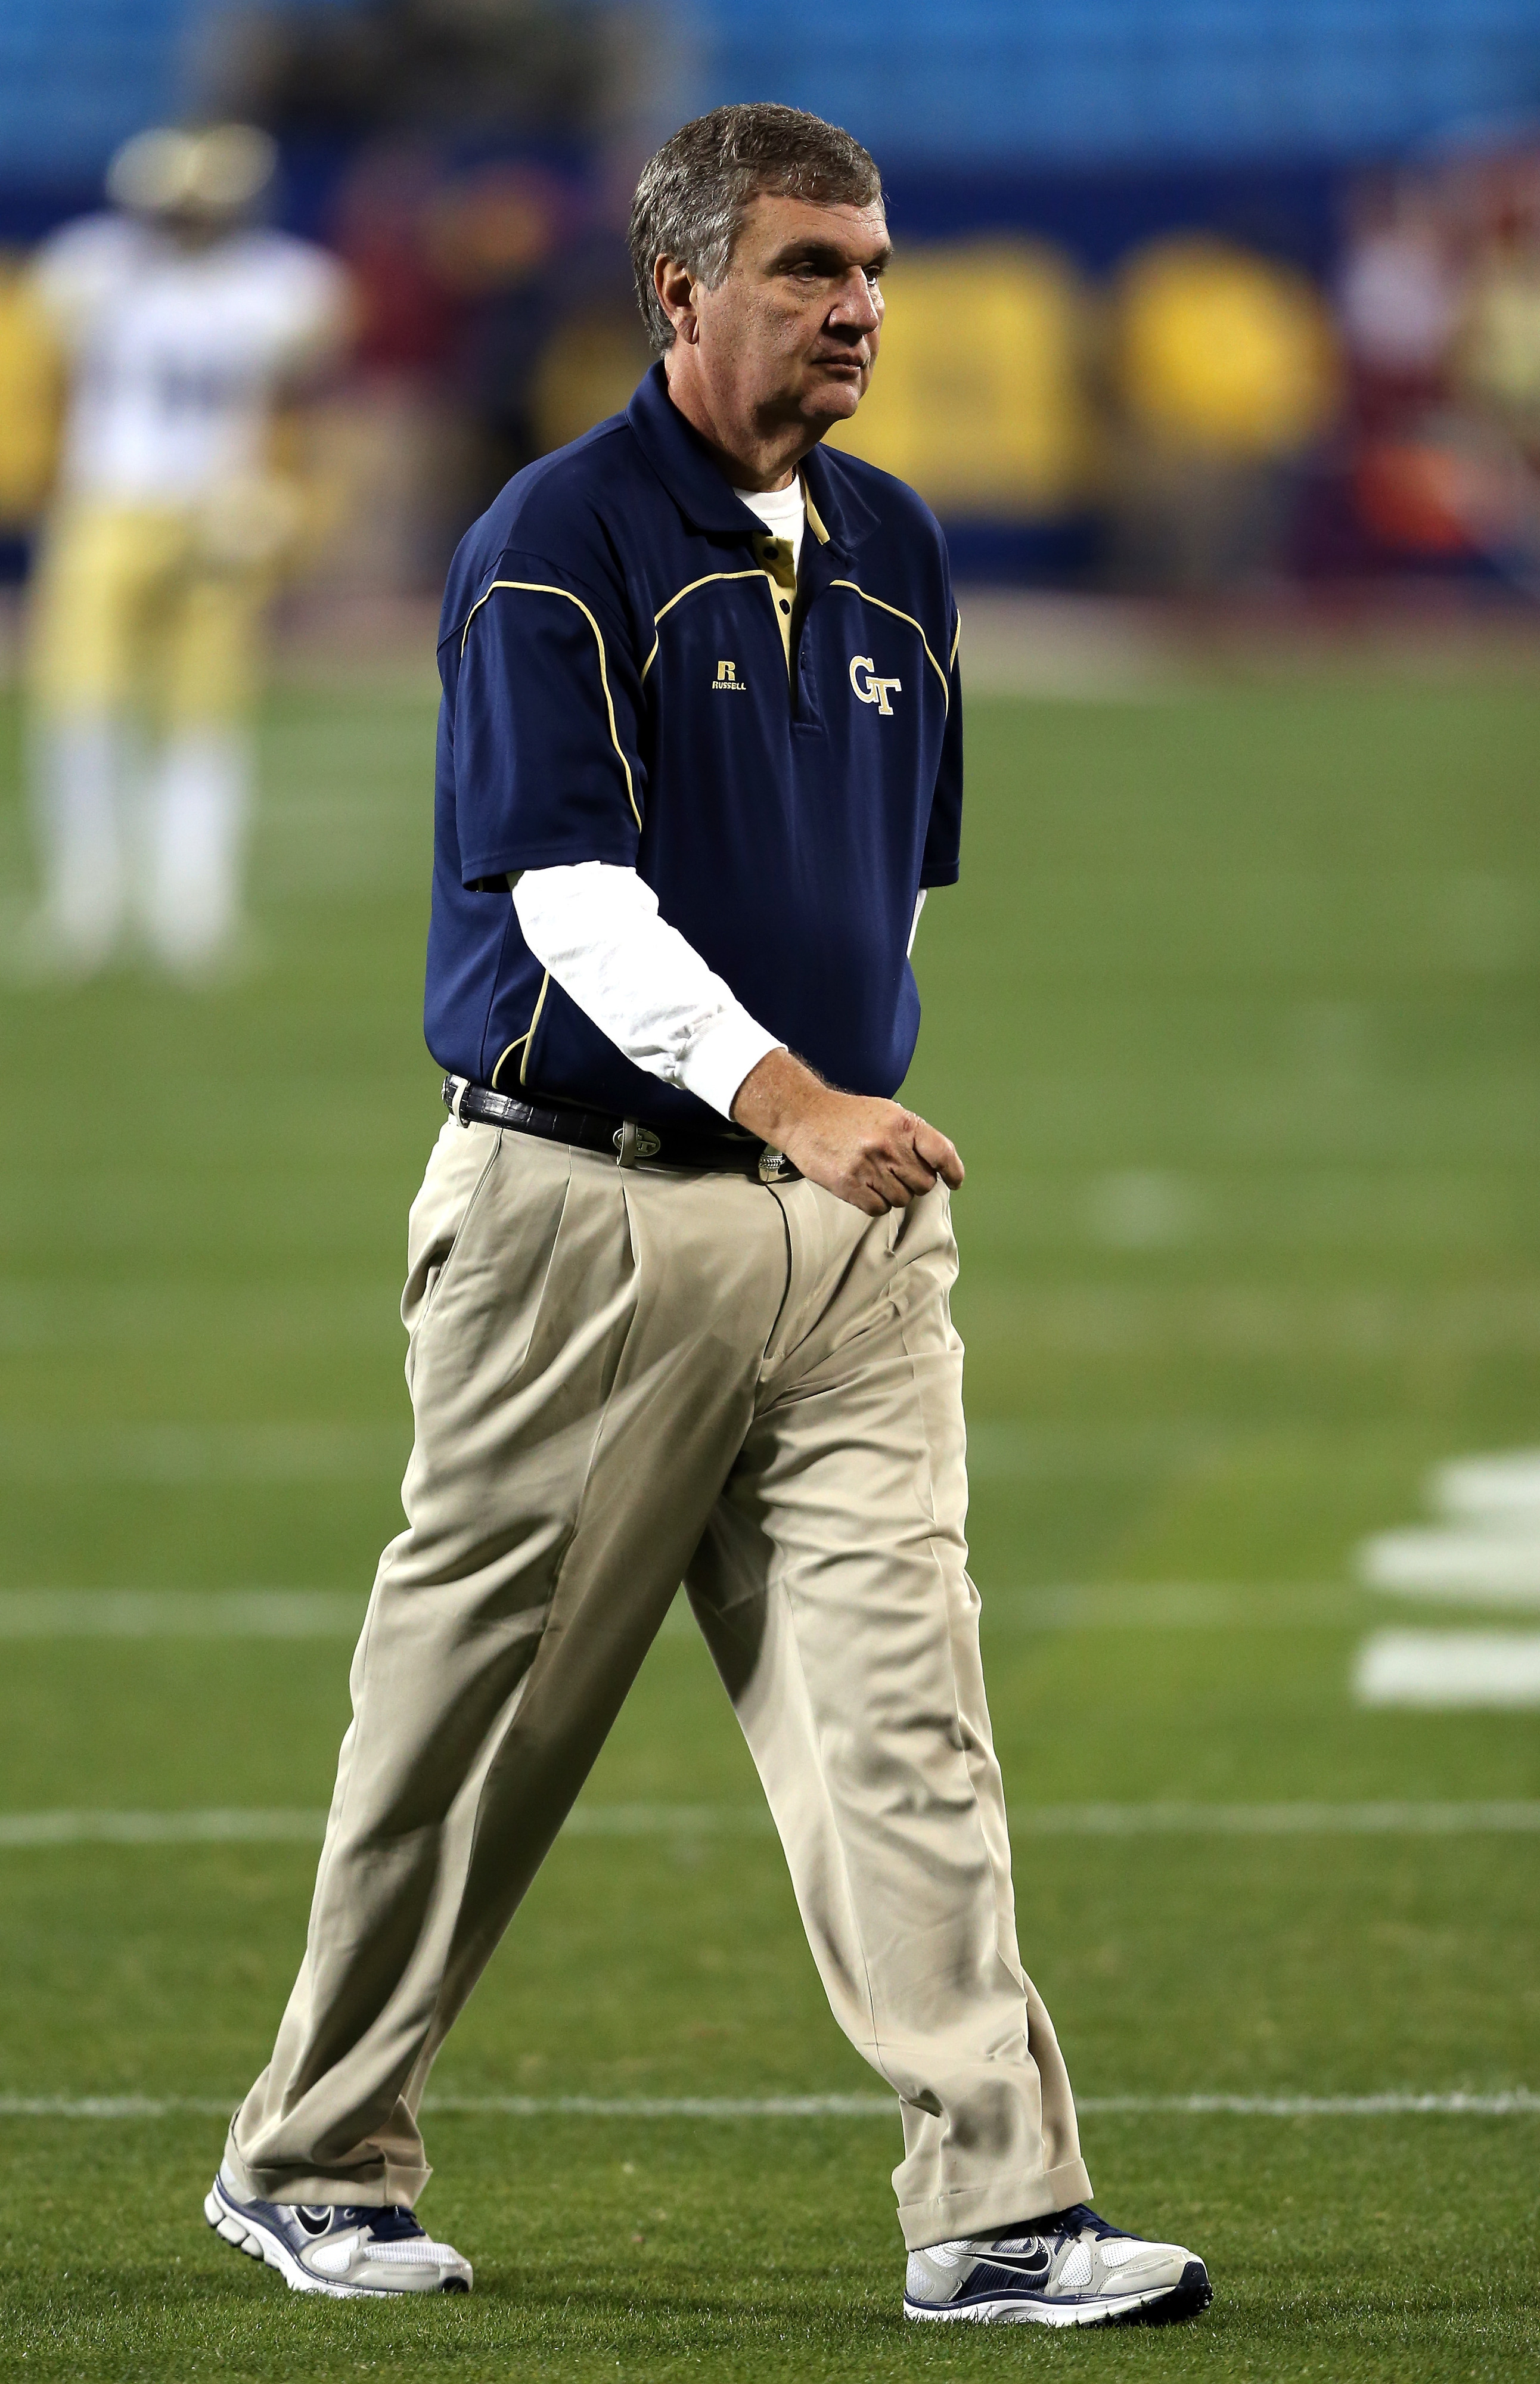 Hopefully the freshmen realize what high expectations this man has for them.